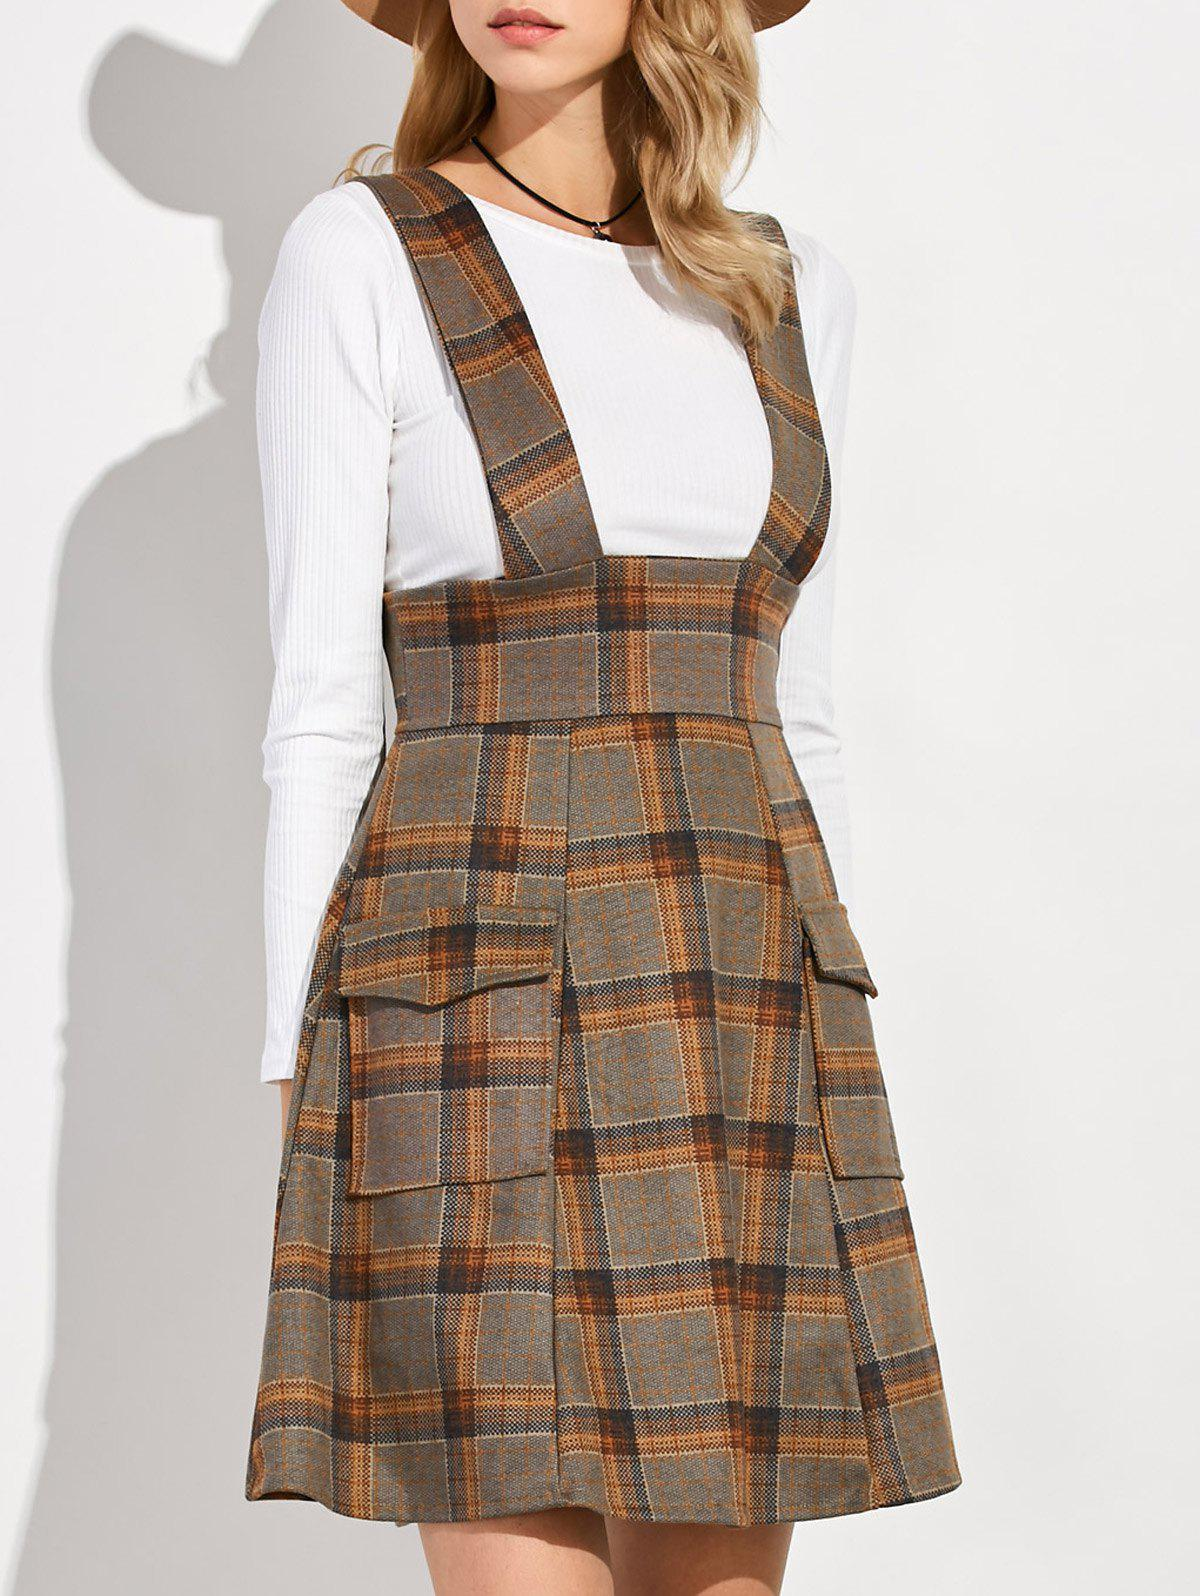 Plaid Suspender Skirt and Slim Fit T-Shirt - ORANGE M